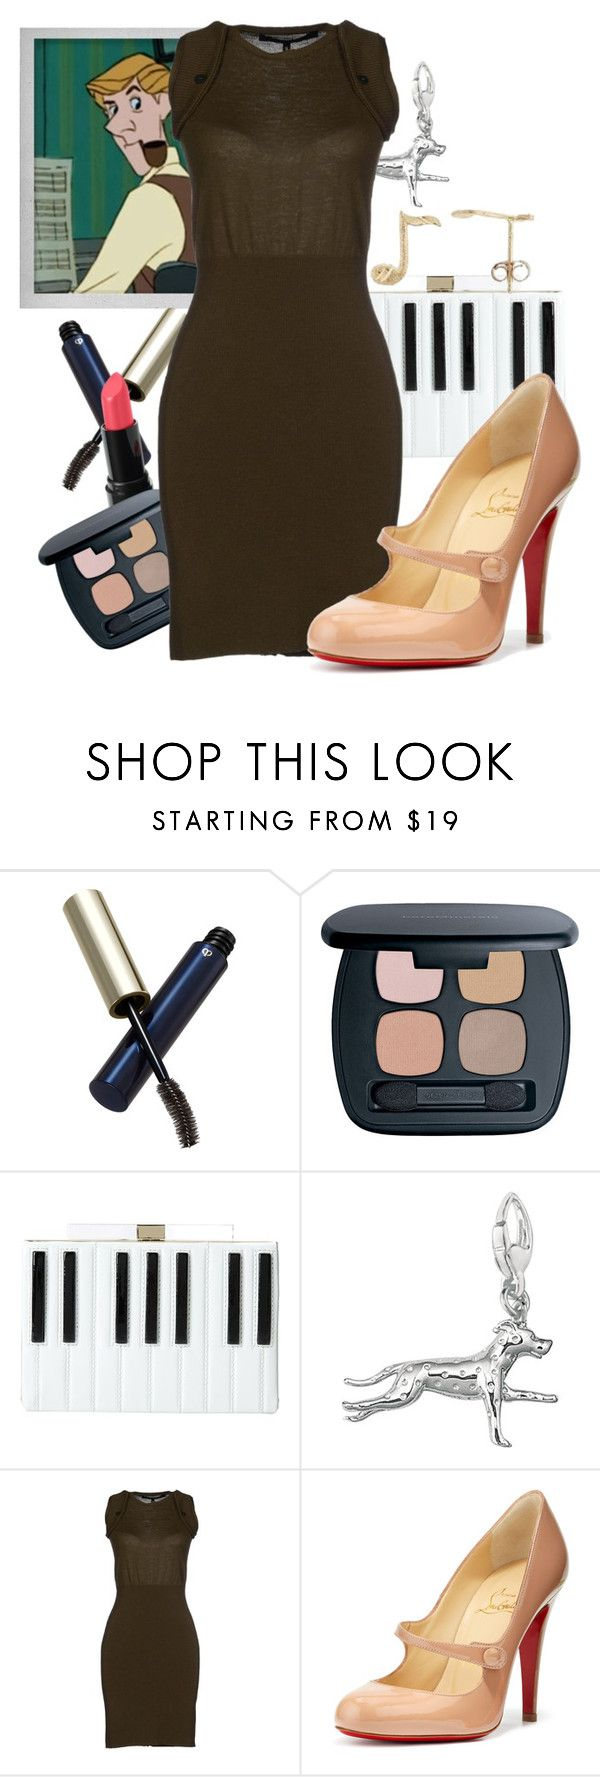 """""""Cocktail Party - Roger Radcliffe"""" by alexxhutcherson ❤ liked on Polyvore featuring Radcliffe, Clé de Peau Beauté, Polaroid, Bare Escentuals, Kate Spade, Karl Lagerfeld and Christian Louboutin"""